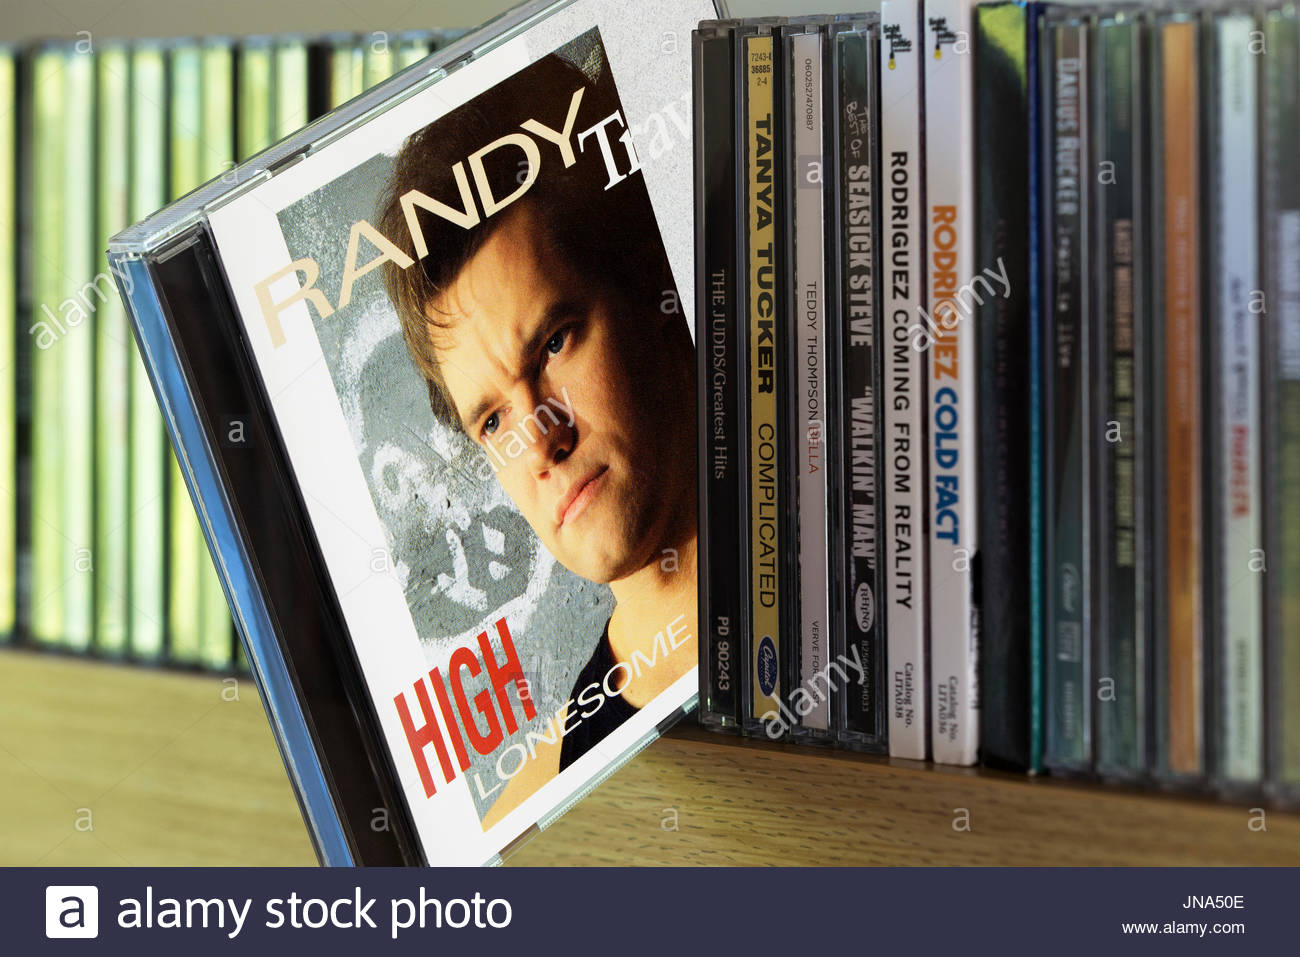 High Lonesome, Randy Travis CD pulled out from among other CD's on a shelf, Dorset, England Stock Photo